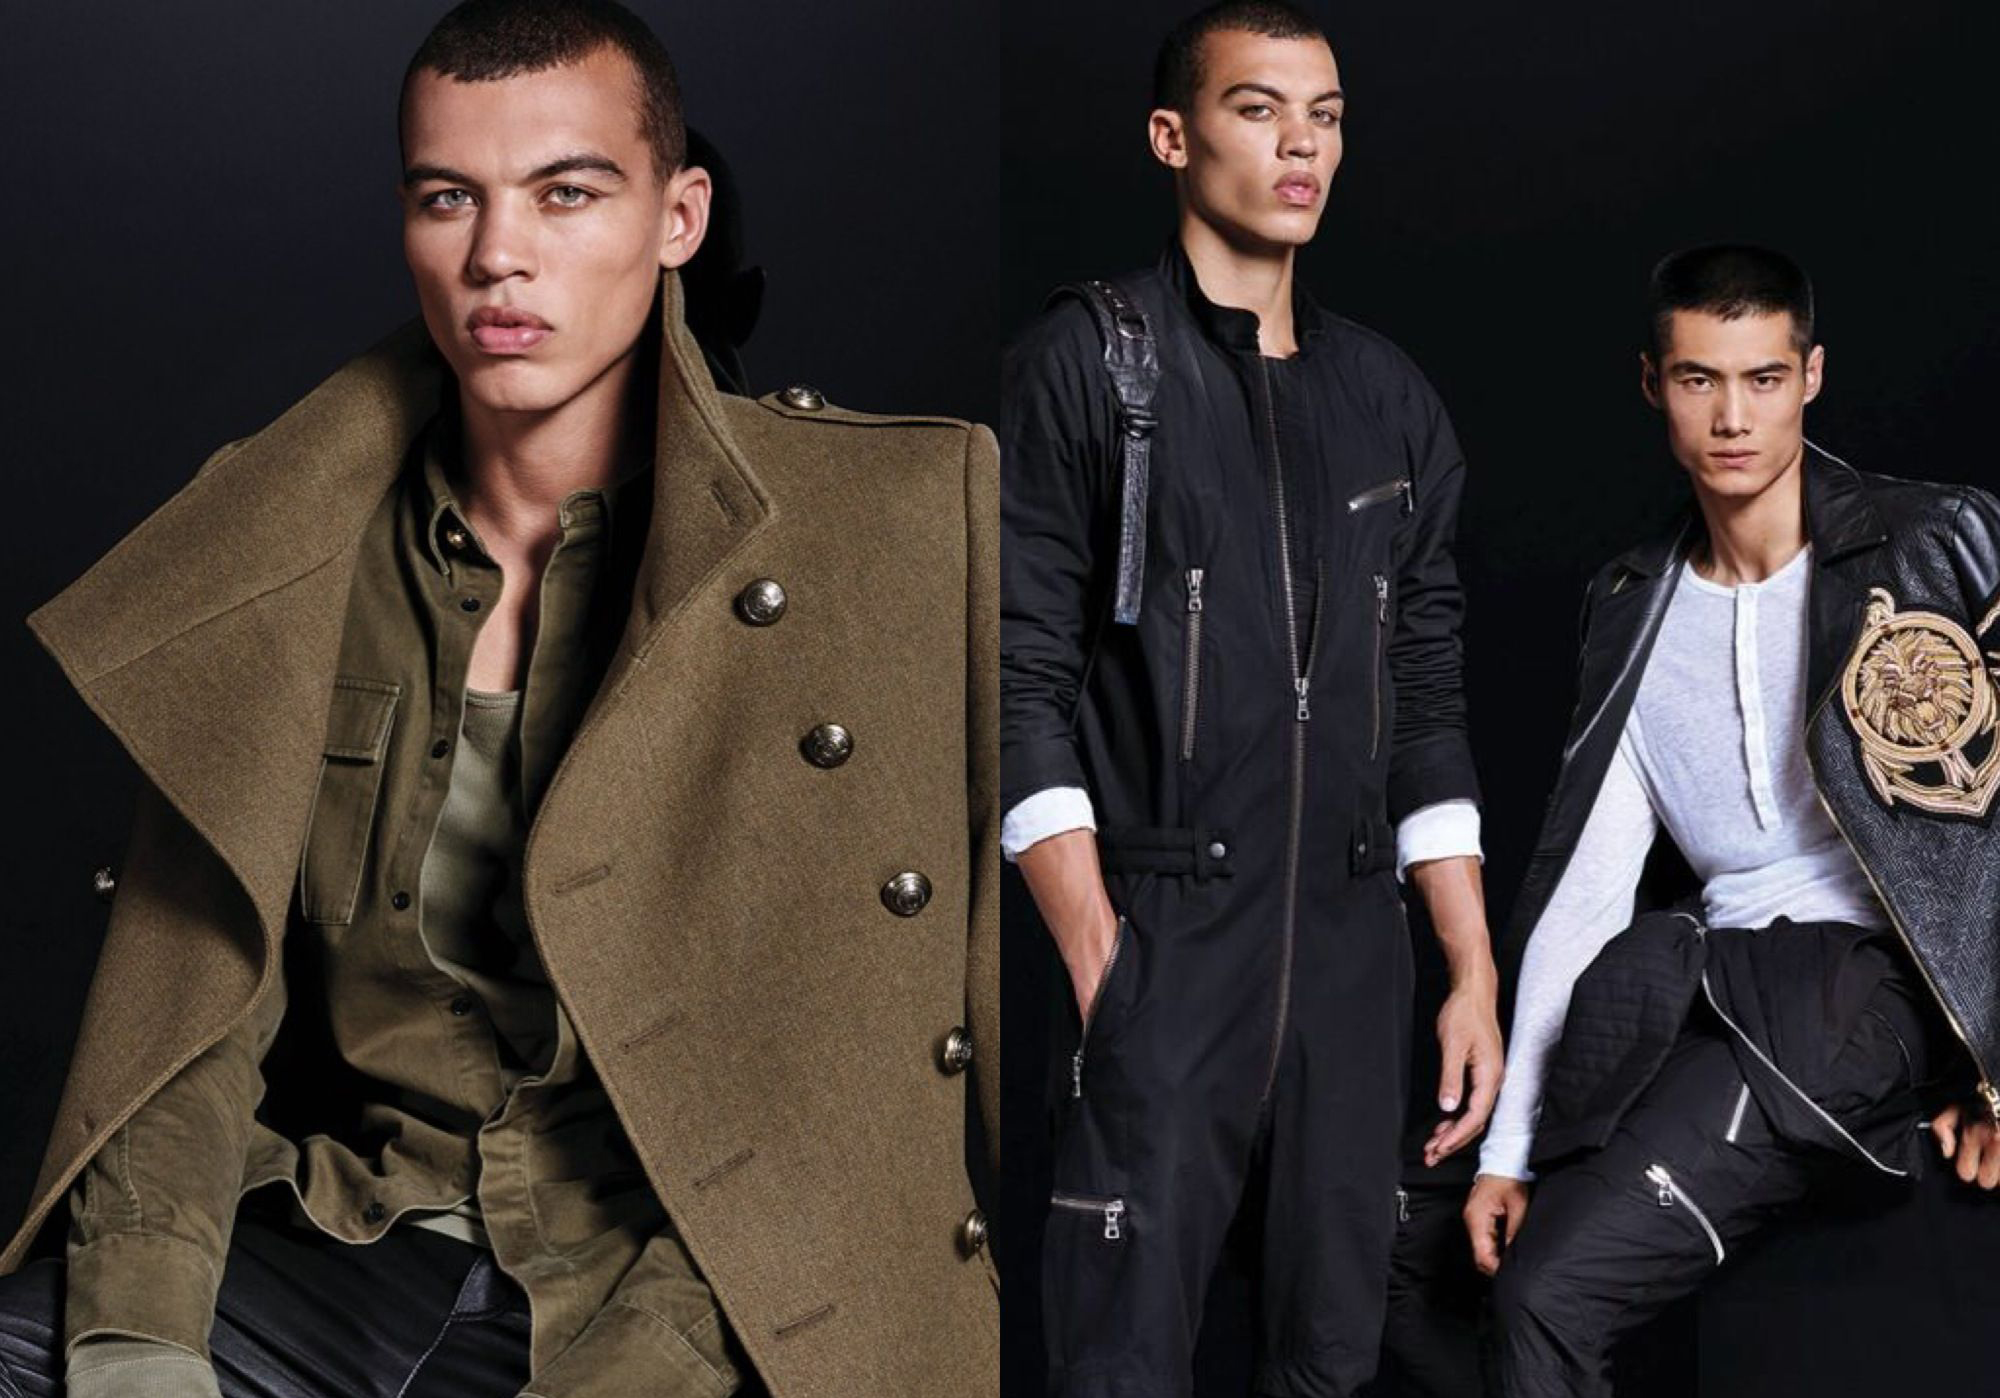 A Closer Look at the Balmain x H&M Collection